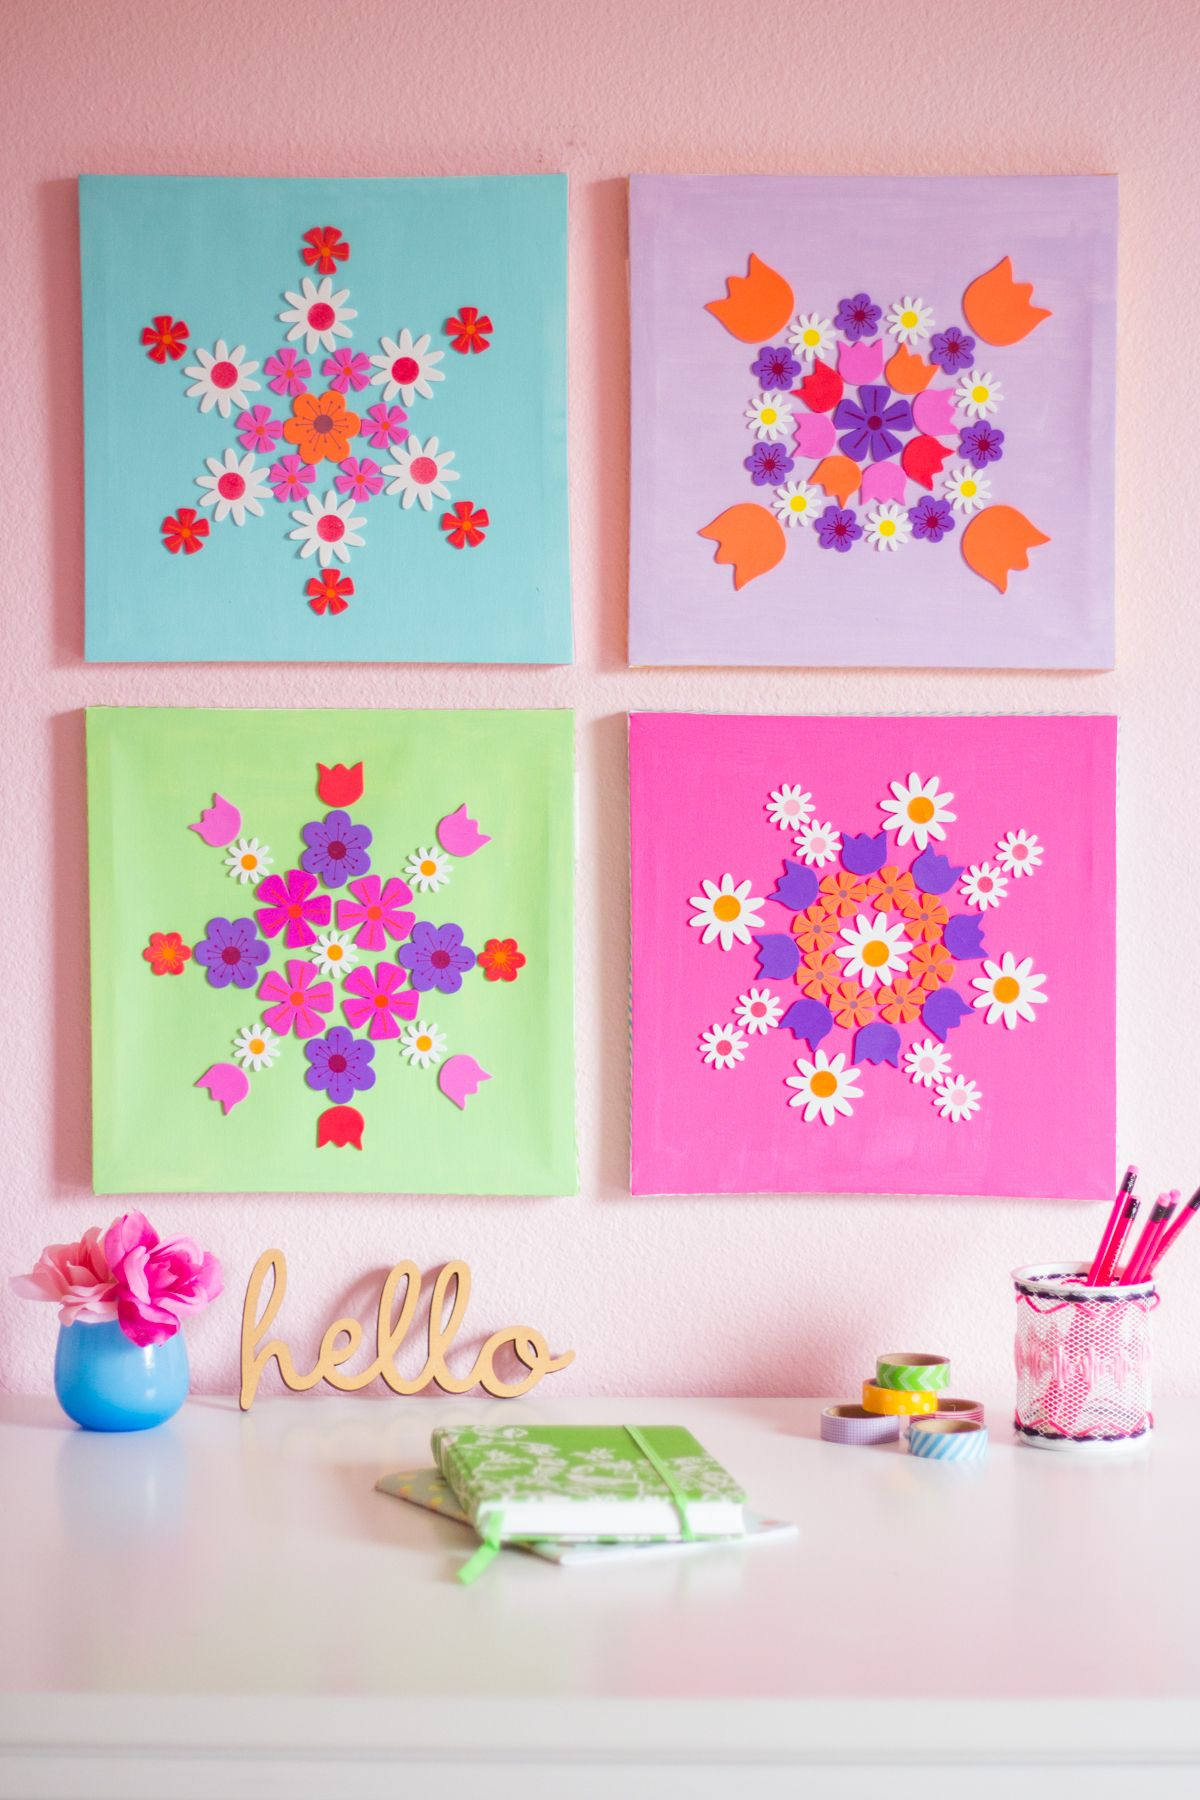 Canvas Art Ideas Part - 28: How To Make DIY Flower Wall Art From Stickers!